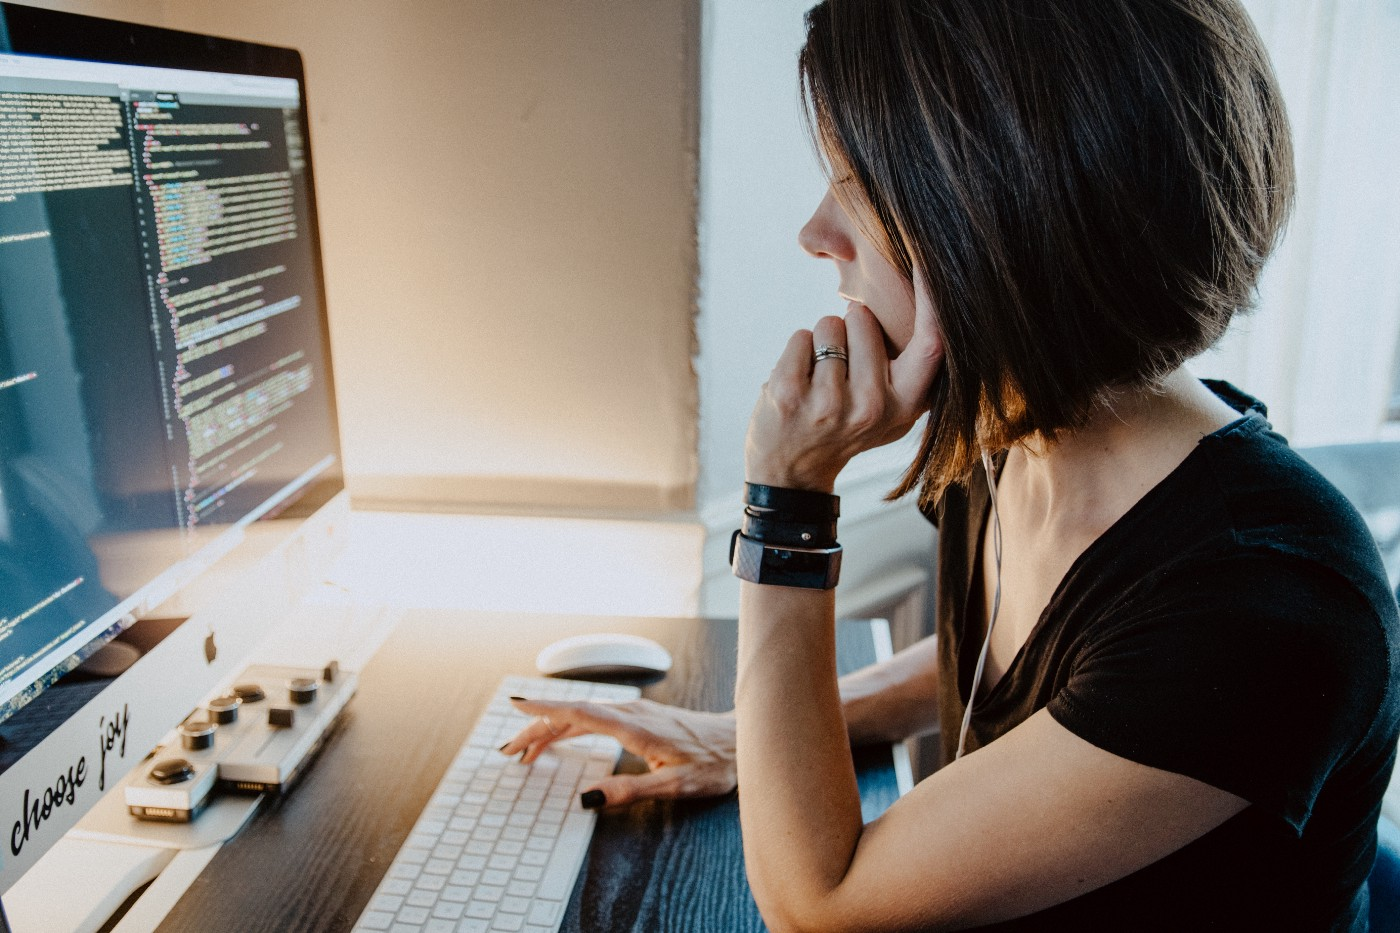 good practices can make programming less frustrating